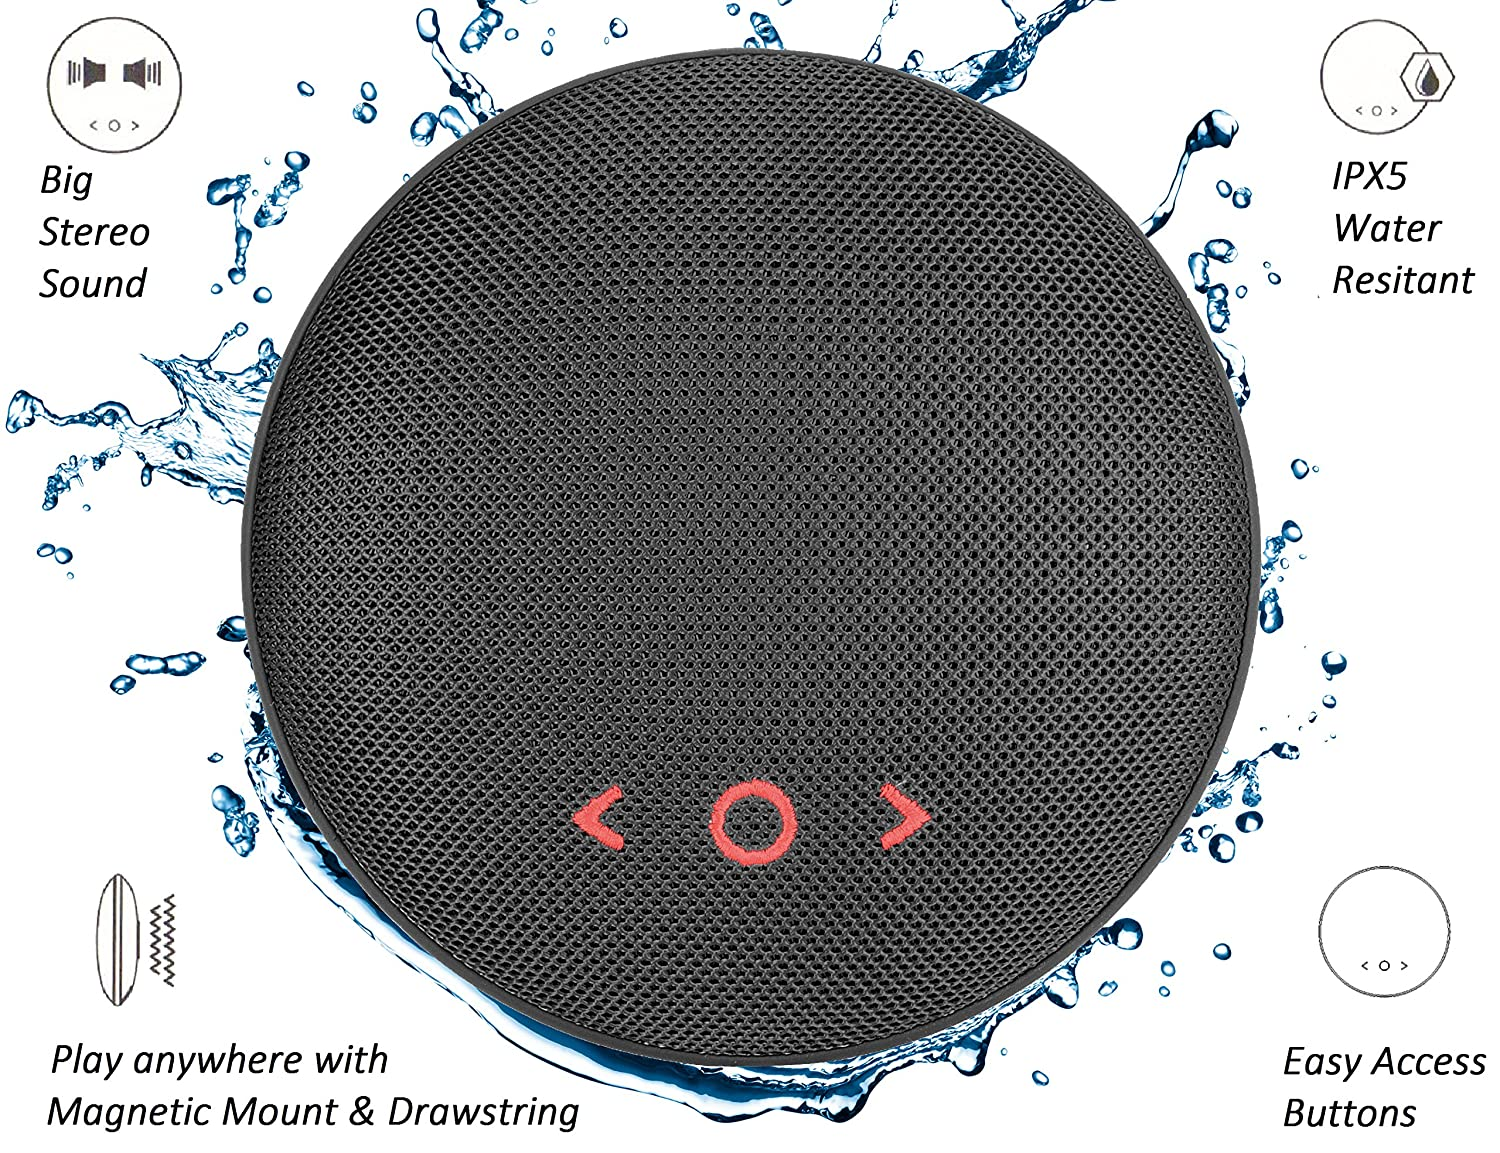 VUUV Macaron BASS Boom IPX5 Waterproof Bluetooth Speaker Super Bass Portable Stereo Dustproof Wireless with Magnetic Back and Hand Straps **Black** Featured Image